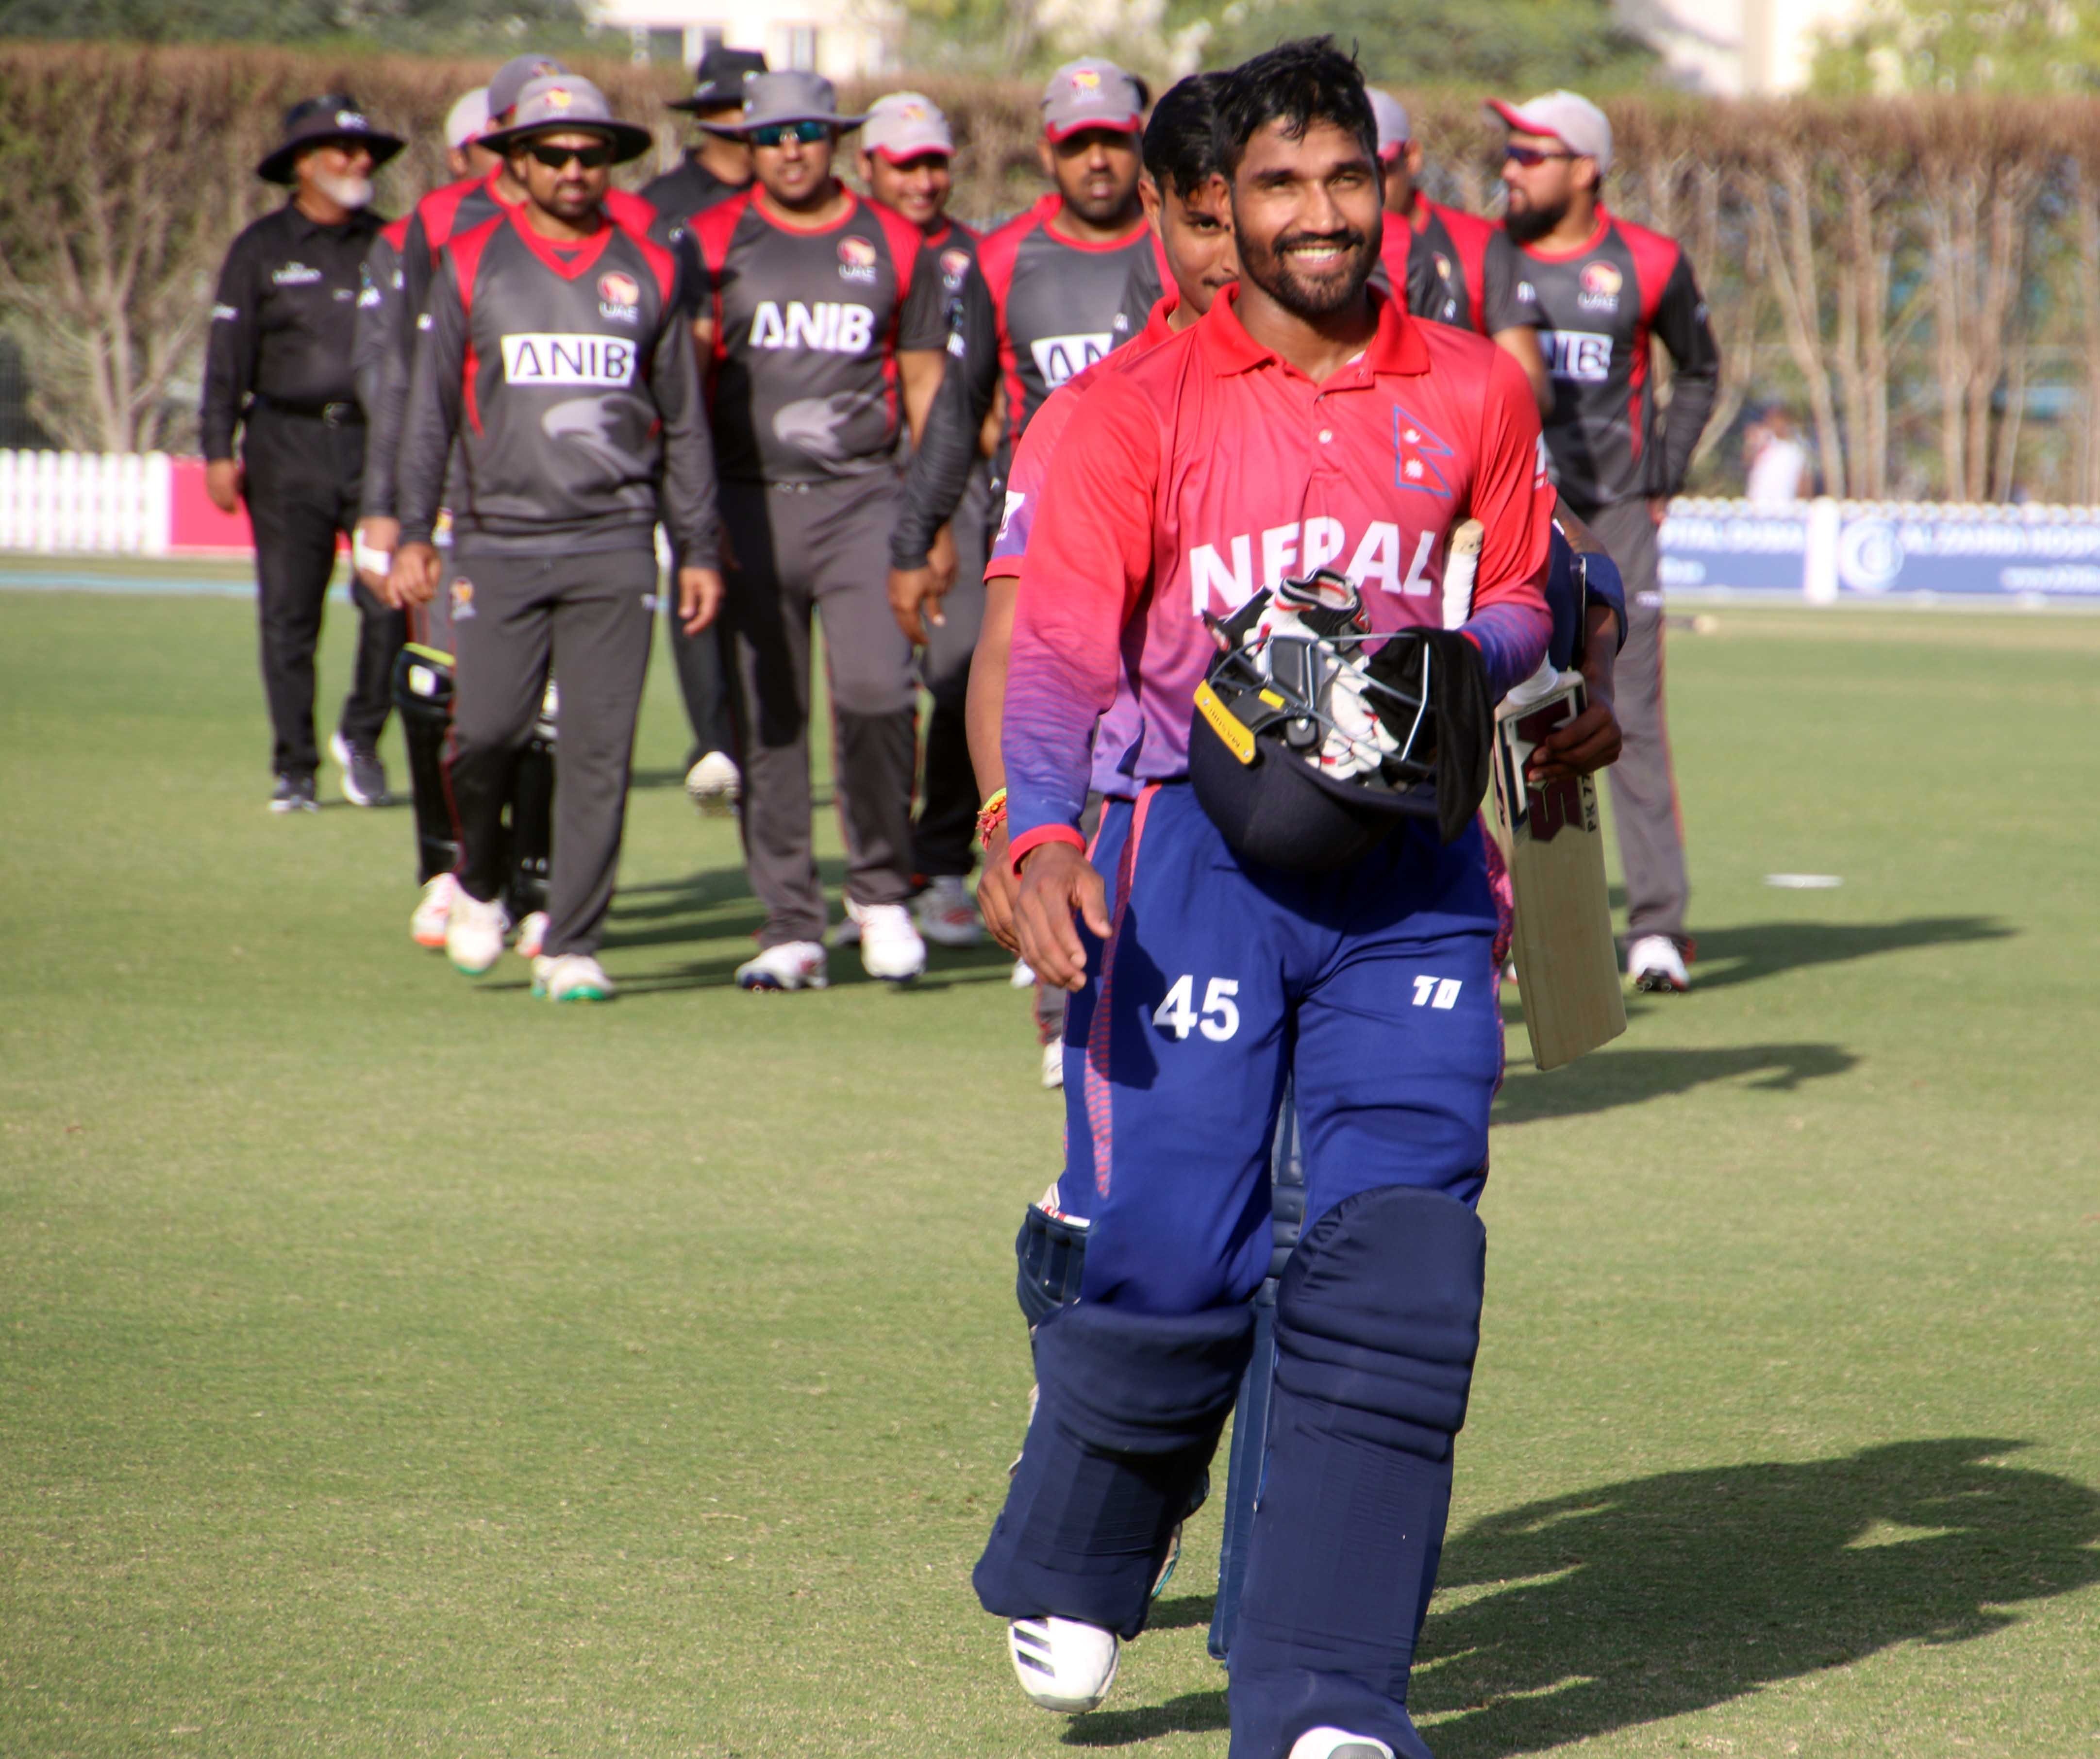 Nepalu2019s Dipendra Singh Airee walks of the pitch after batting against the UAE in their second match of the Twenty20 International series in Dubai on Friday. Photo: THT